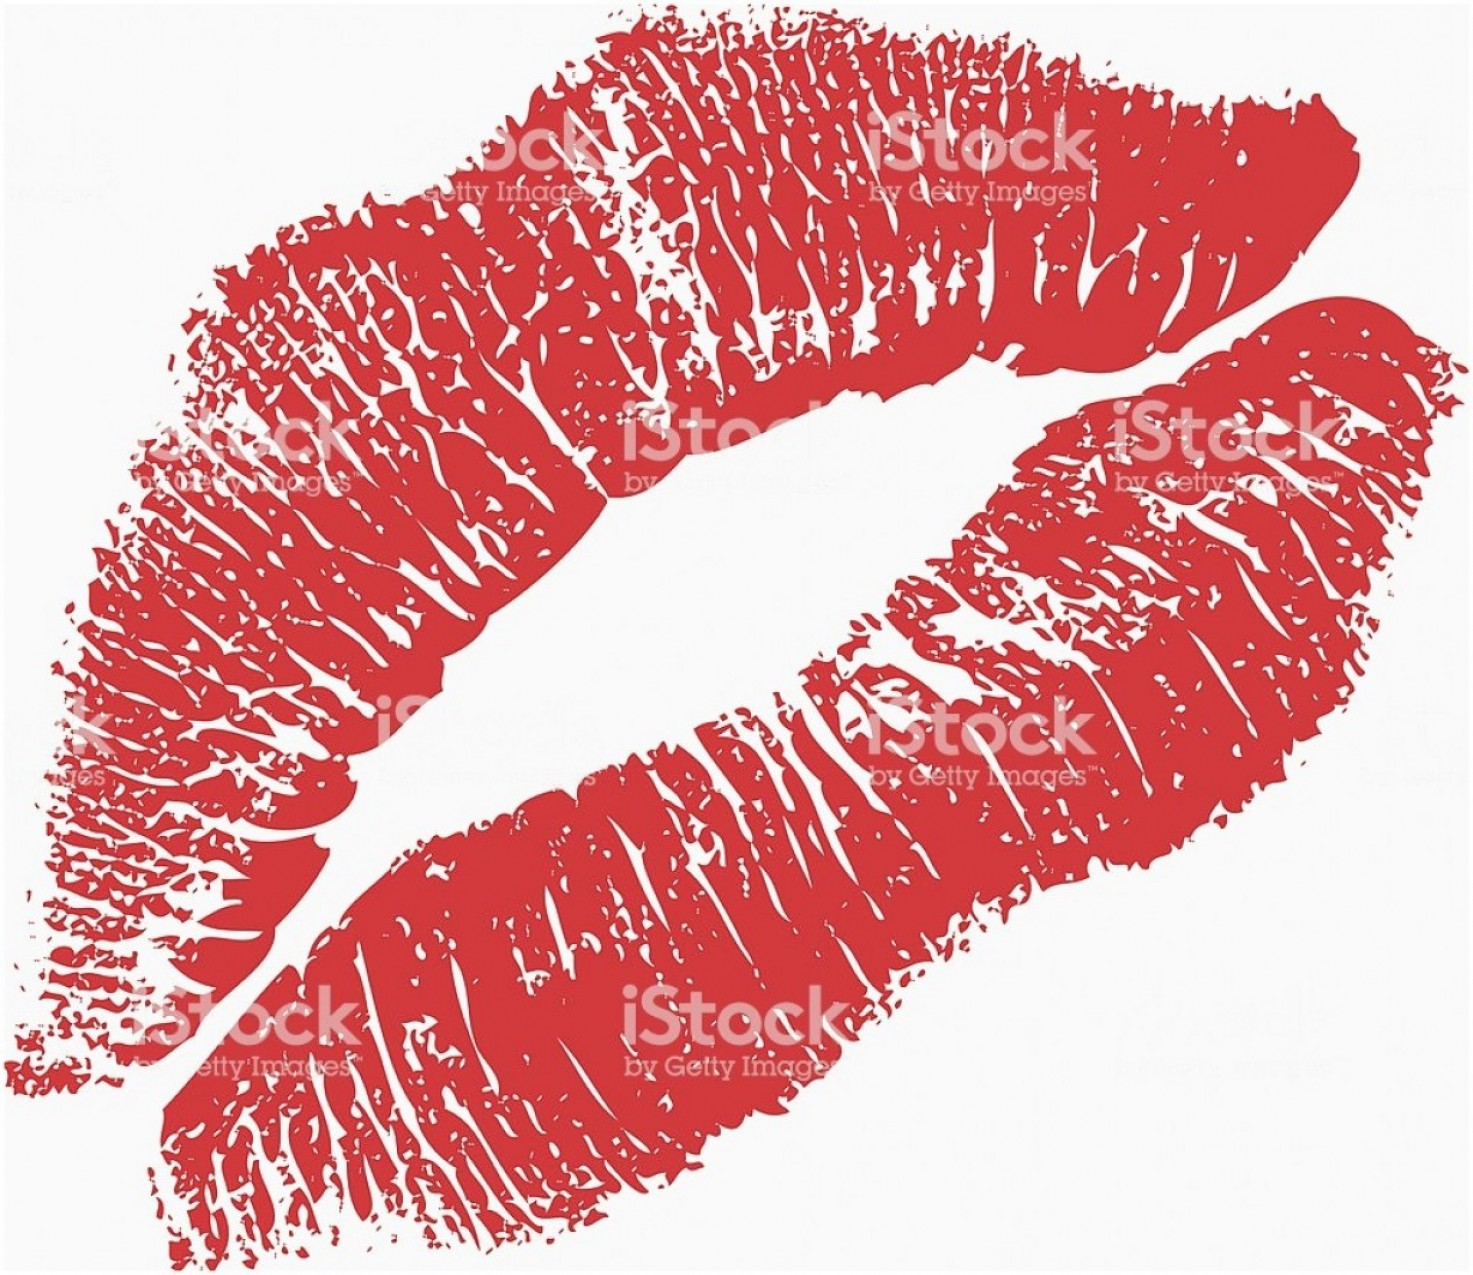 Pink Lips Vector Clip Art: Lipstick Kiss Clipart Unique Pink Lipstick Kiss On White Background Lips Royalty Free